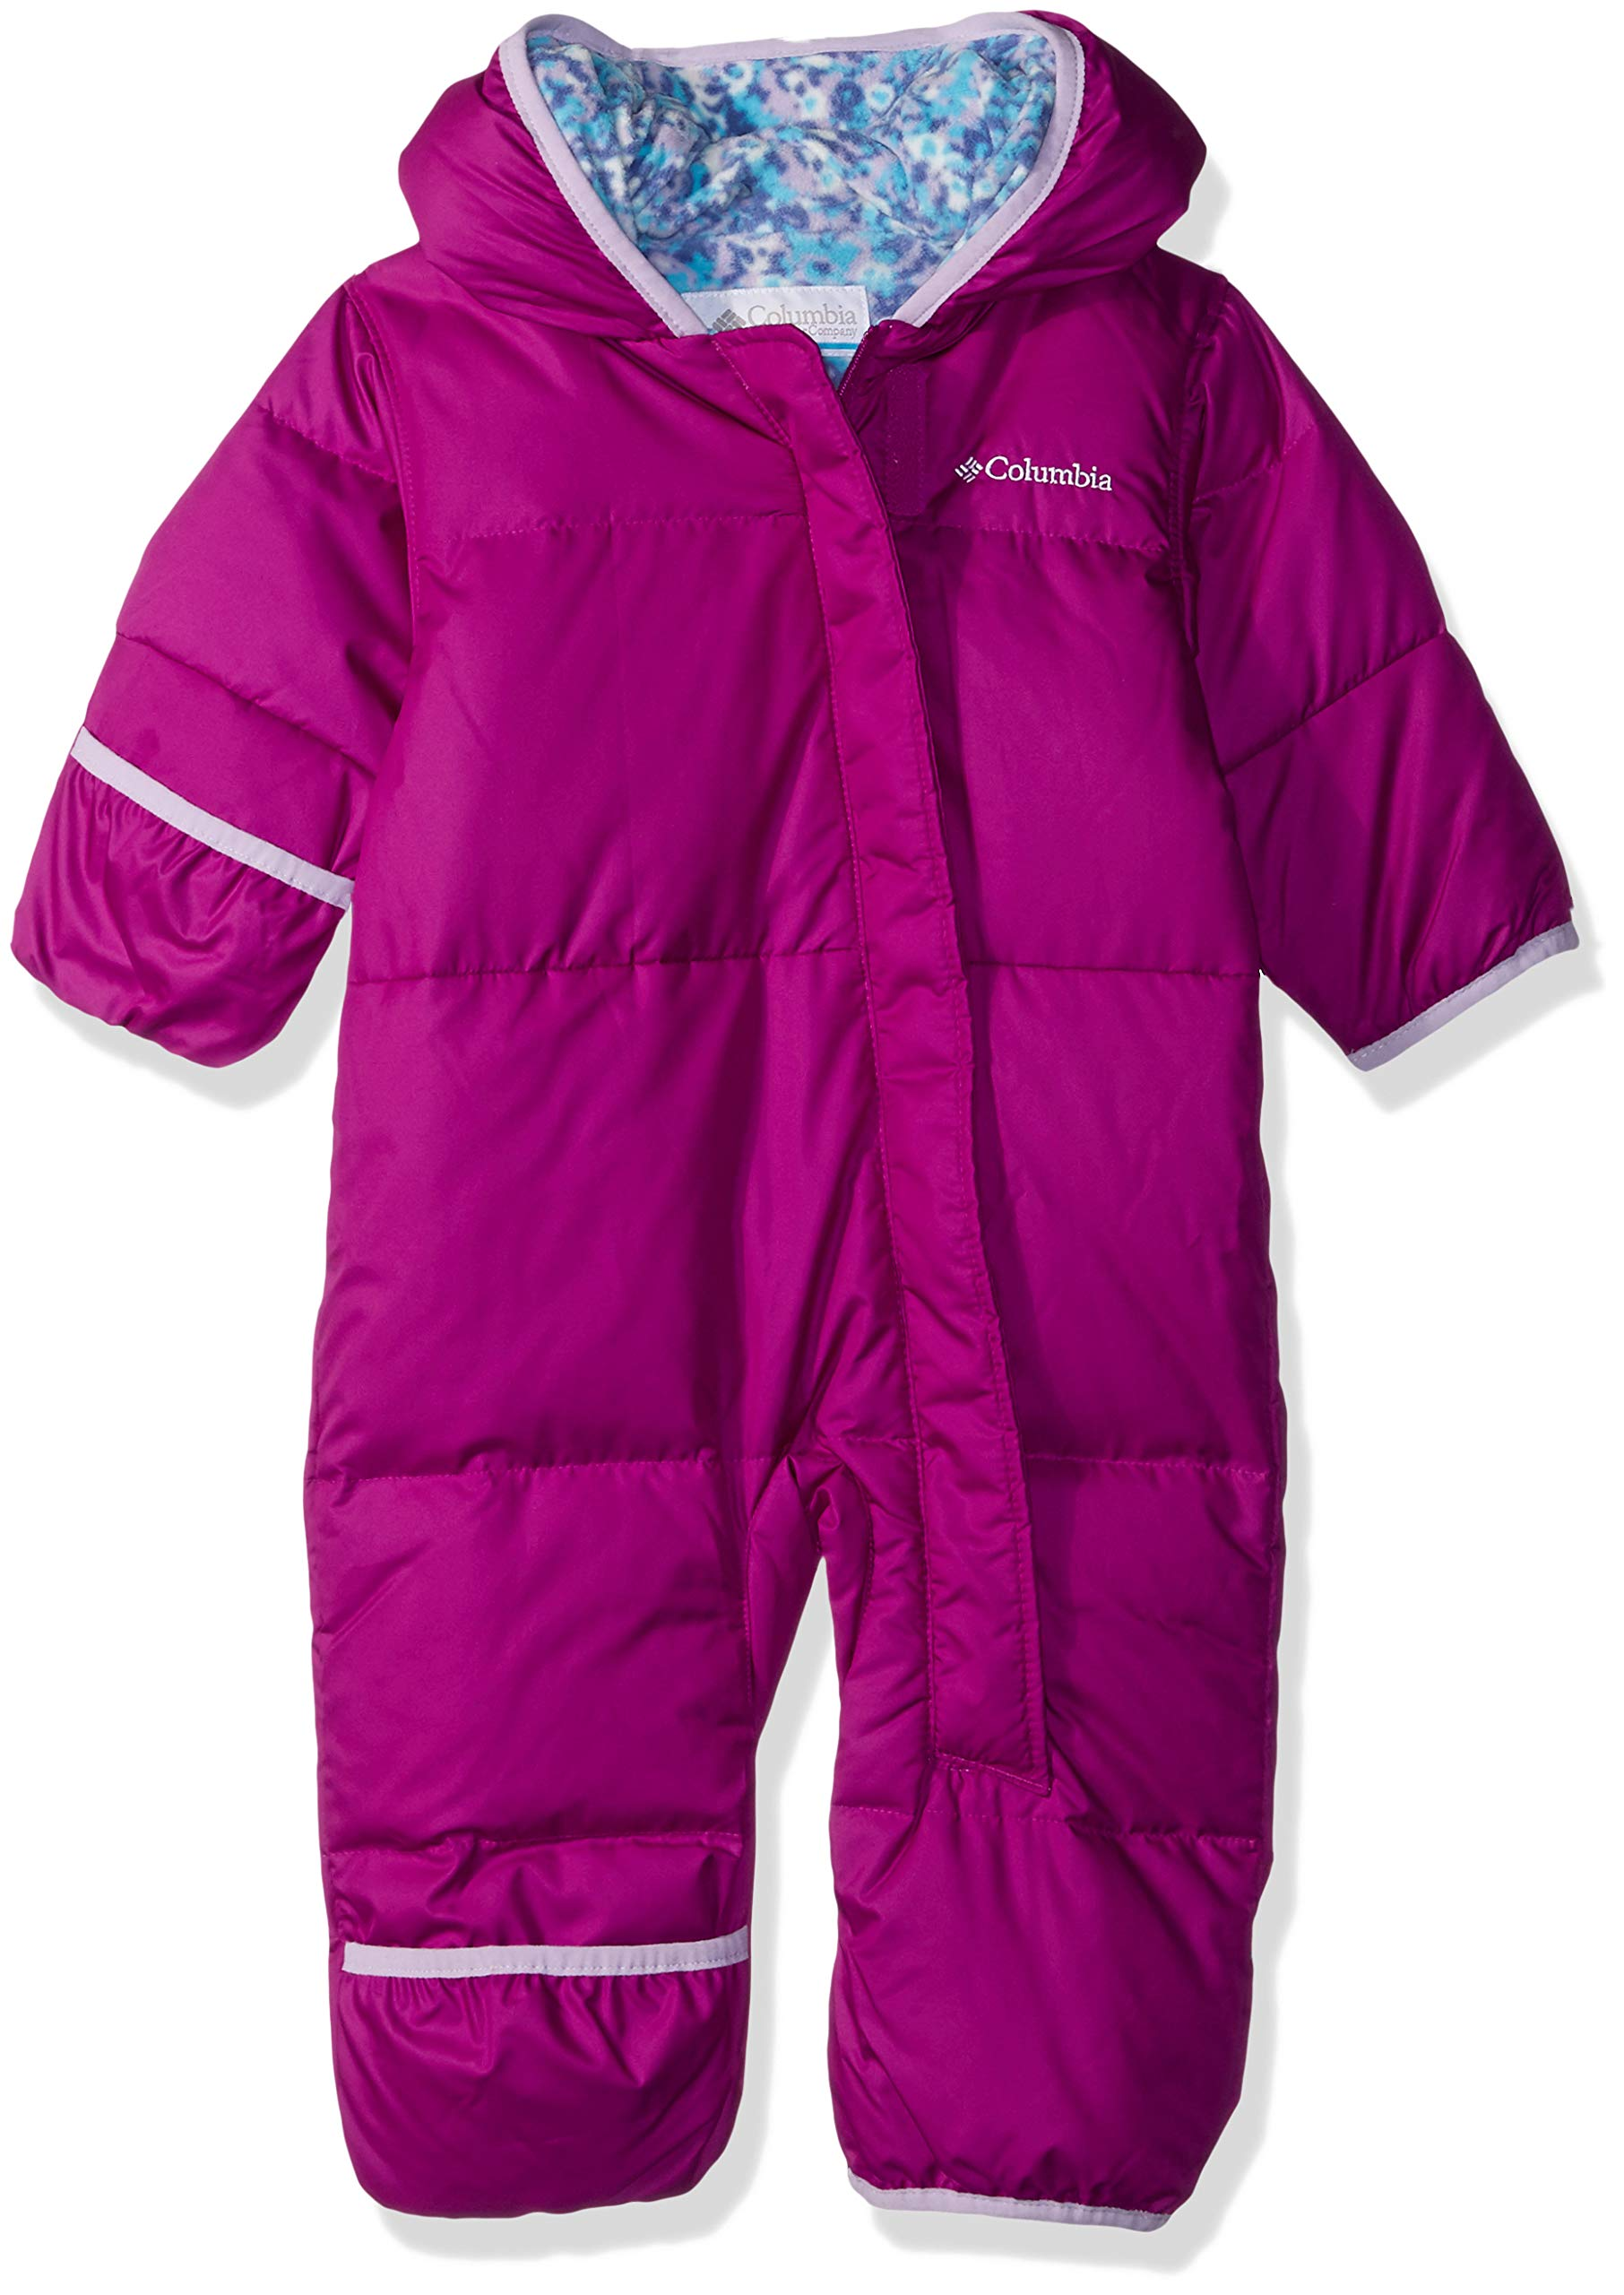 Columbia Baby Snuggly Bunny Insulated Water-Resistant Bunting, Bright Plum/Soft Violet Multi 18-24 Months